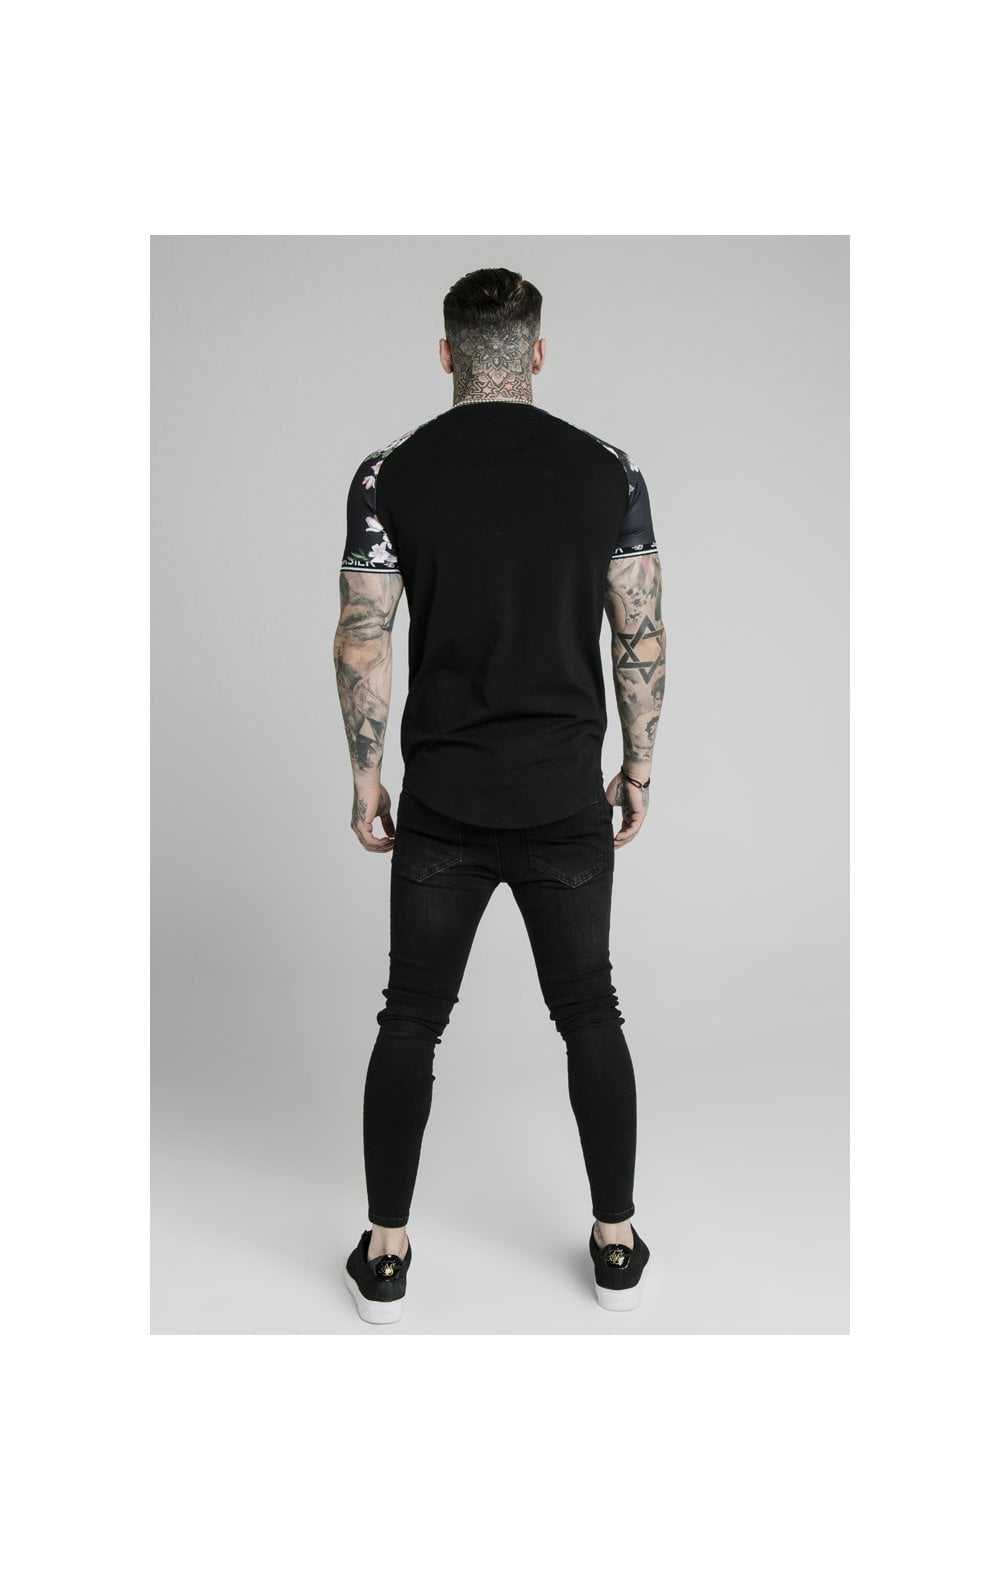 Load image into Gallery viewer, SikSilk S/S Prestige Floral Inset Tech Tee - Black (4)